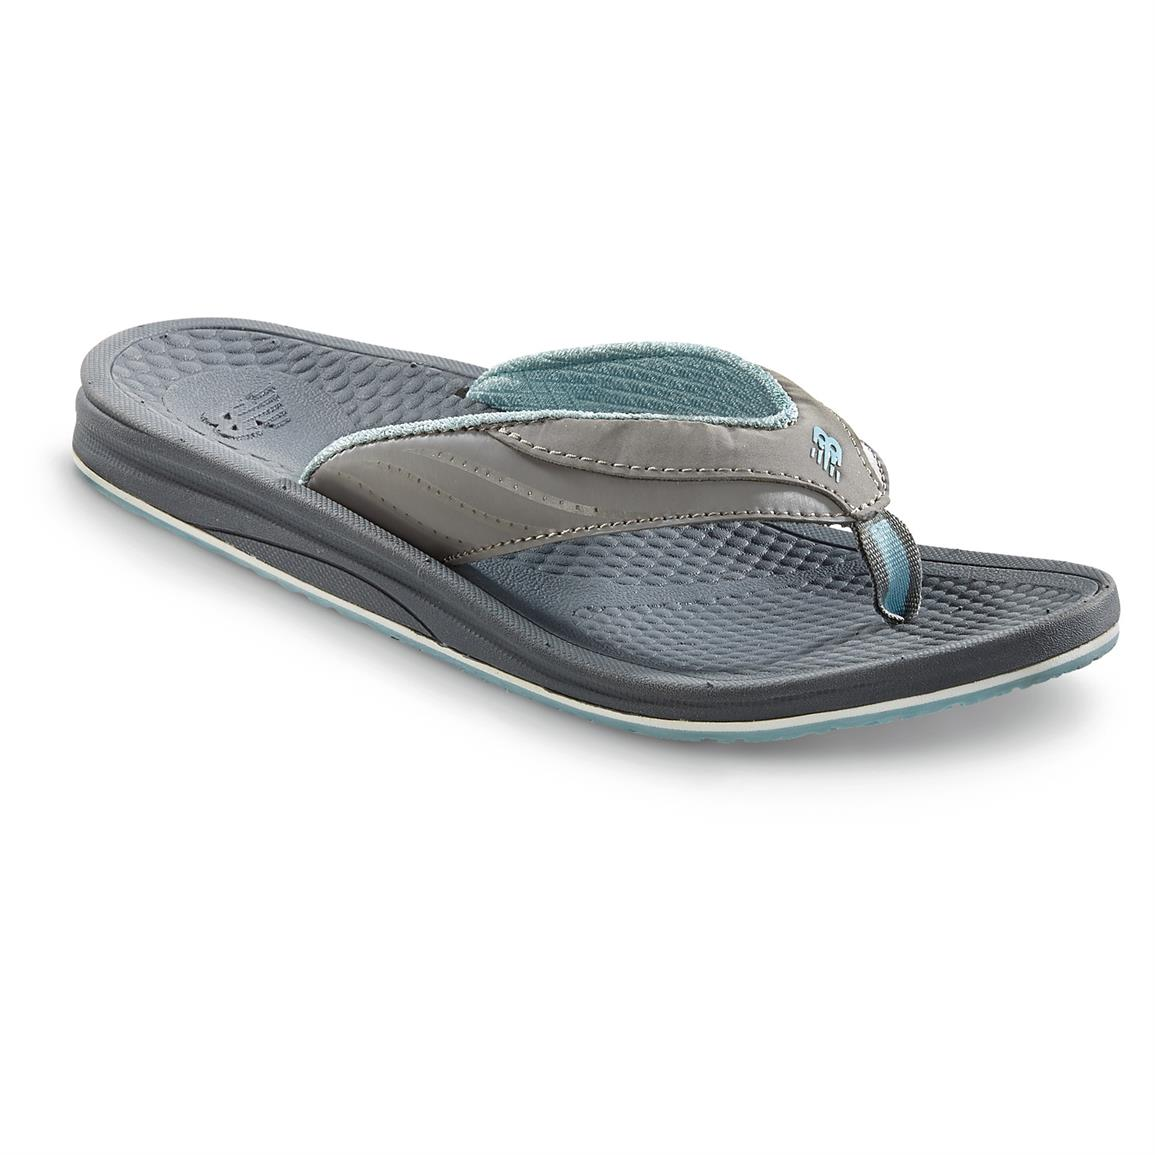 New Balance Women's PureAlign Thong Sandals, Gray / Blue